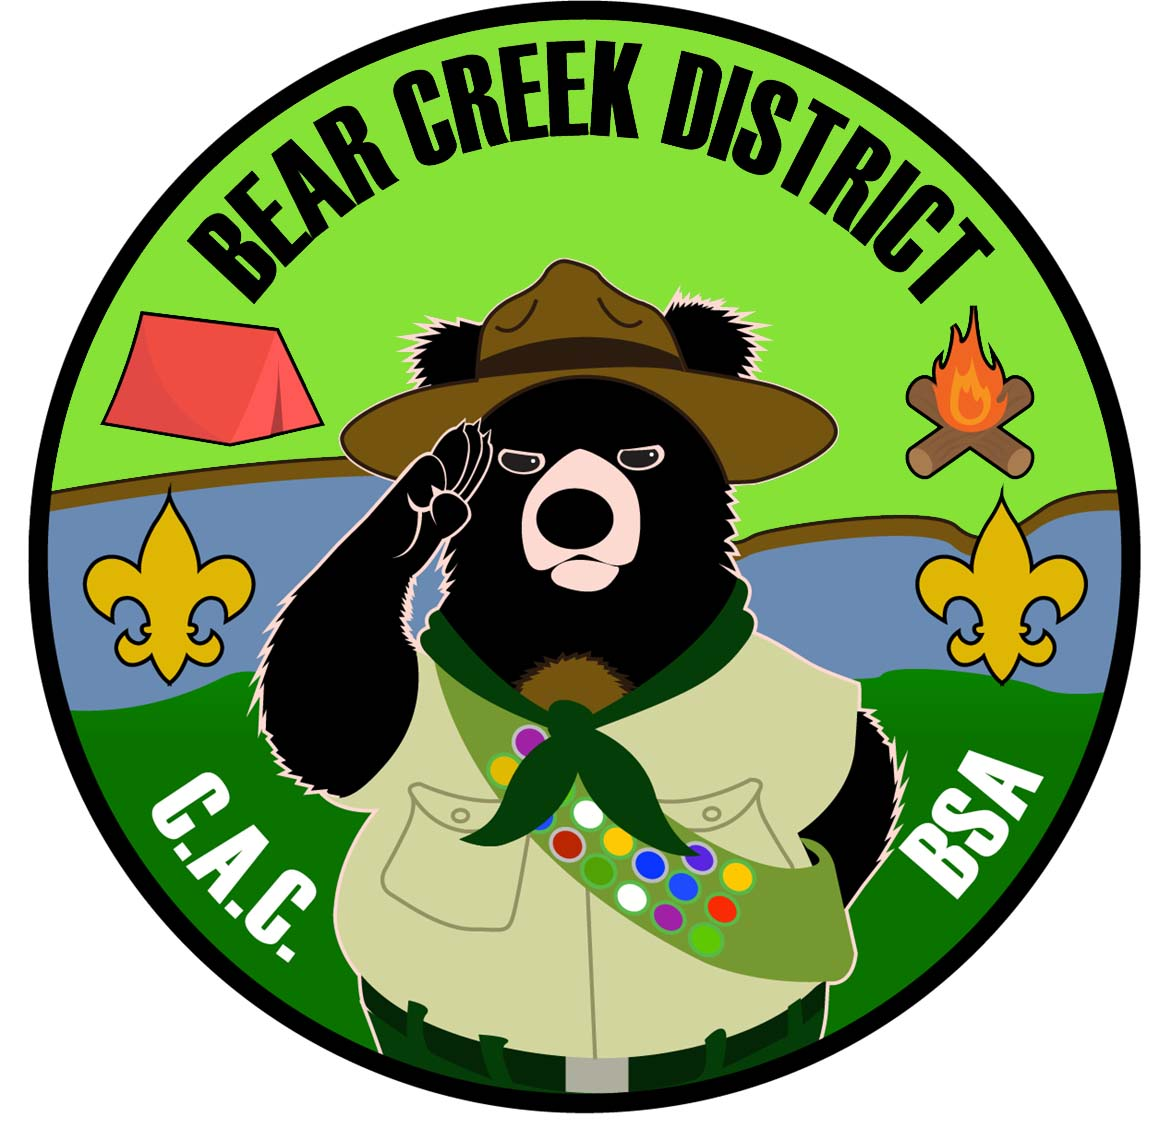 Bear Creek District